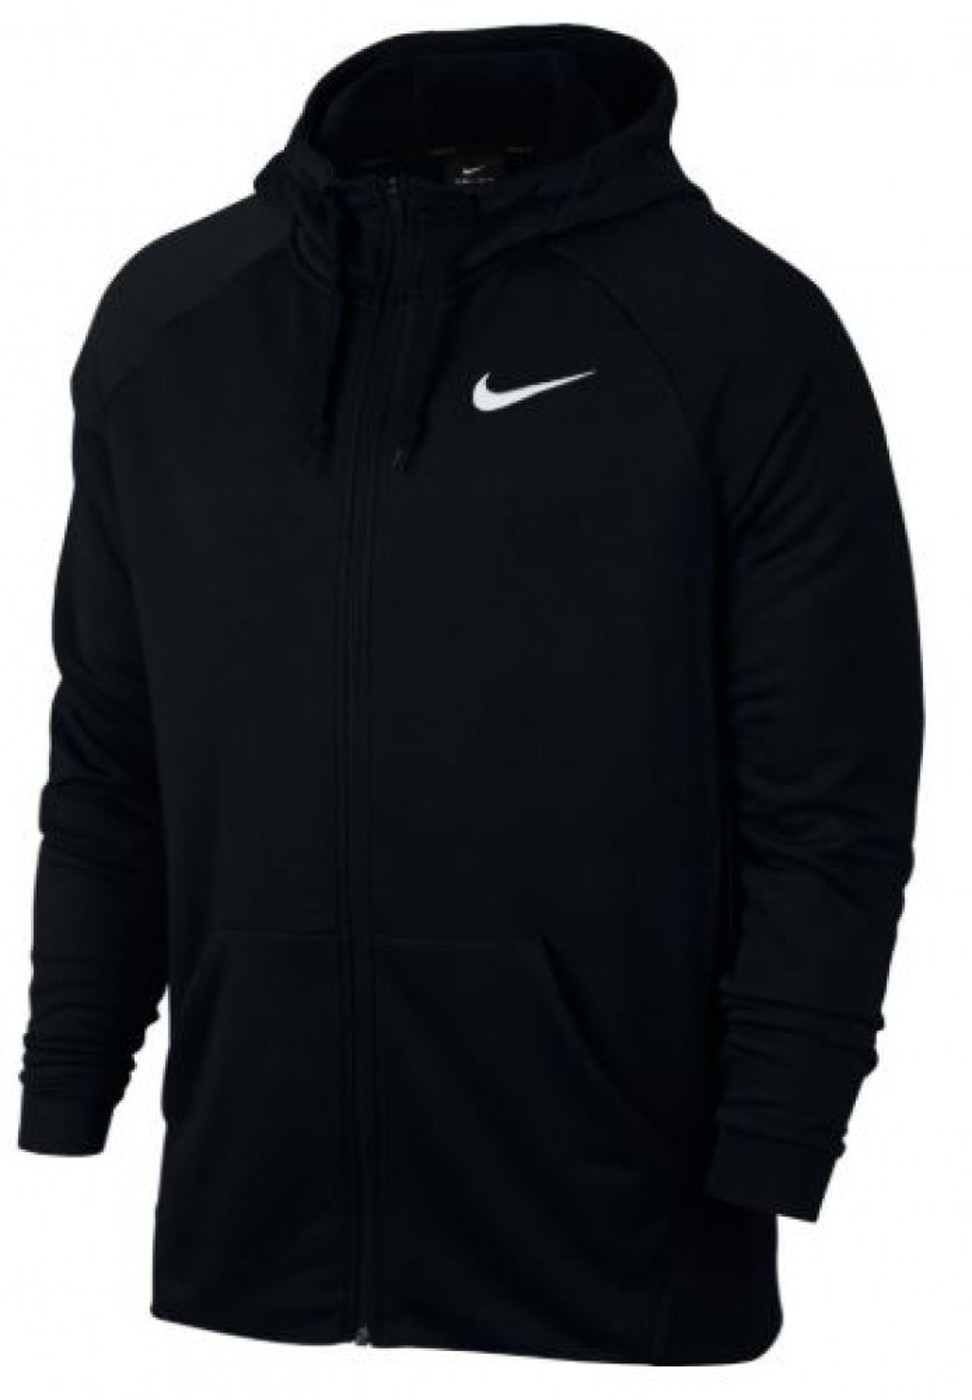 NIKE Sweatjacke DRY FLEECE - Herren